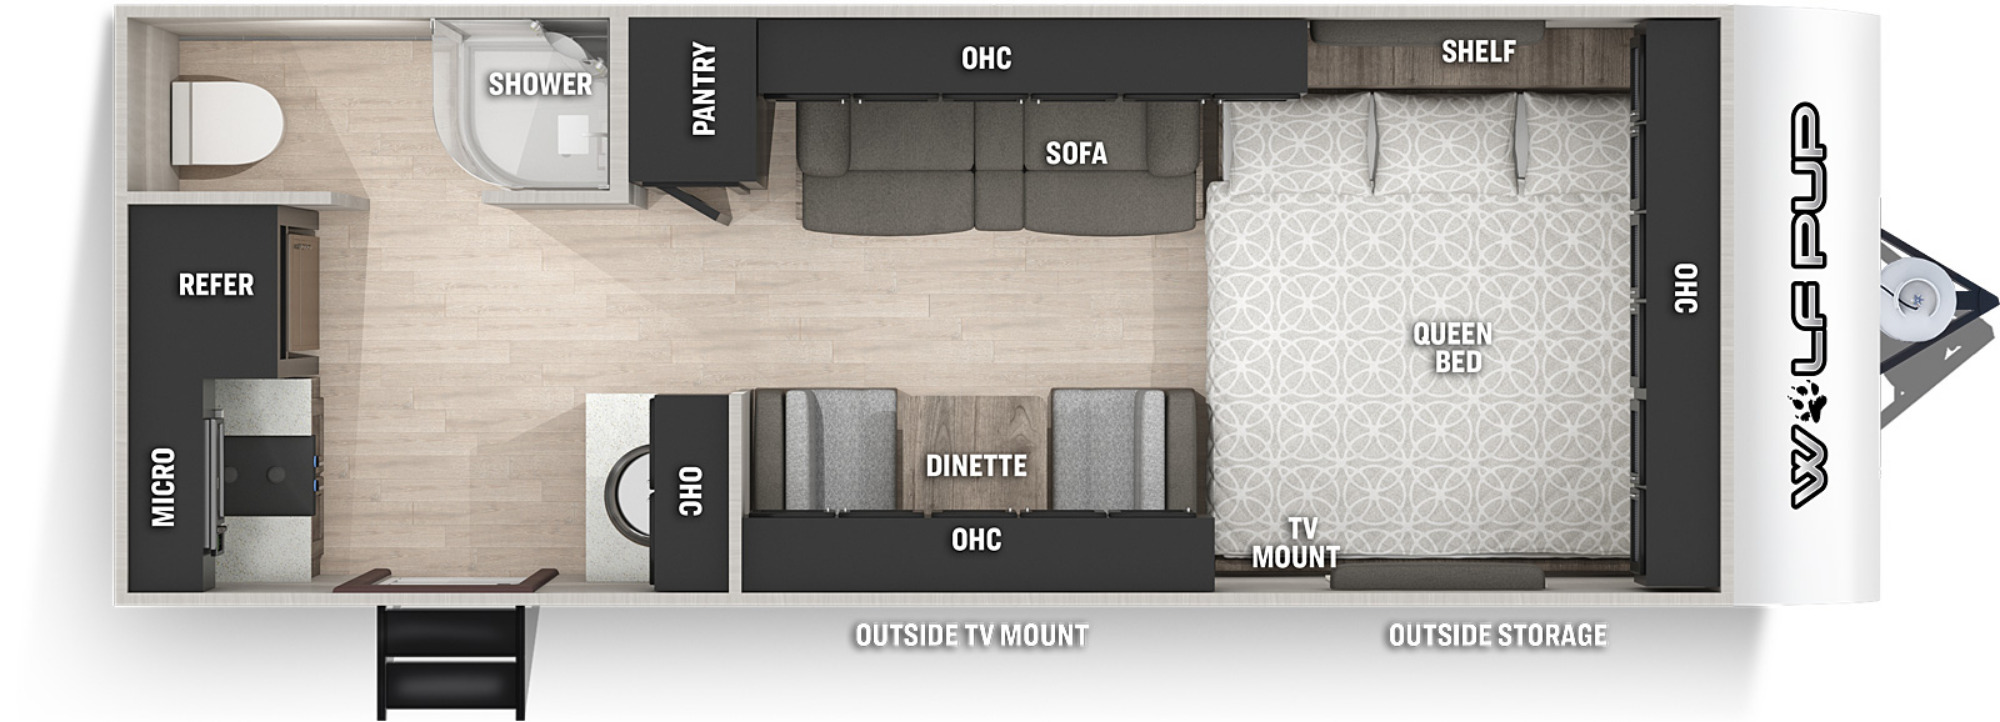 View Floor Plan for 2021 FOREST RIVER WOLF PUP 16HE